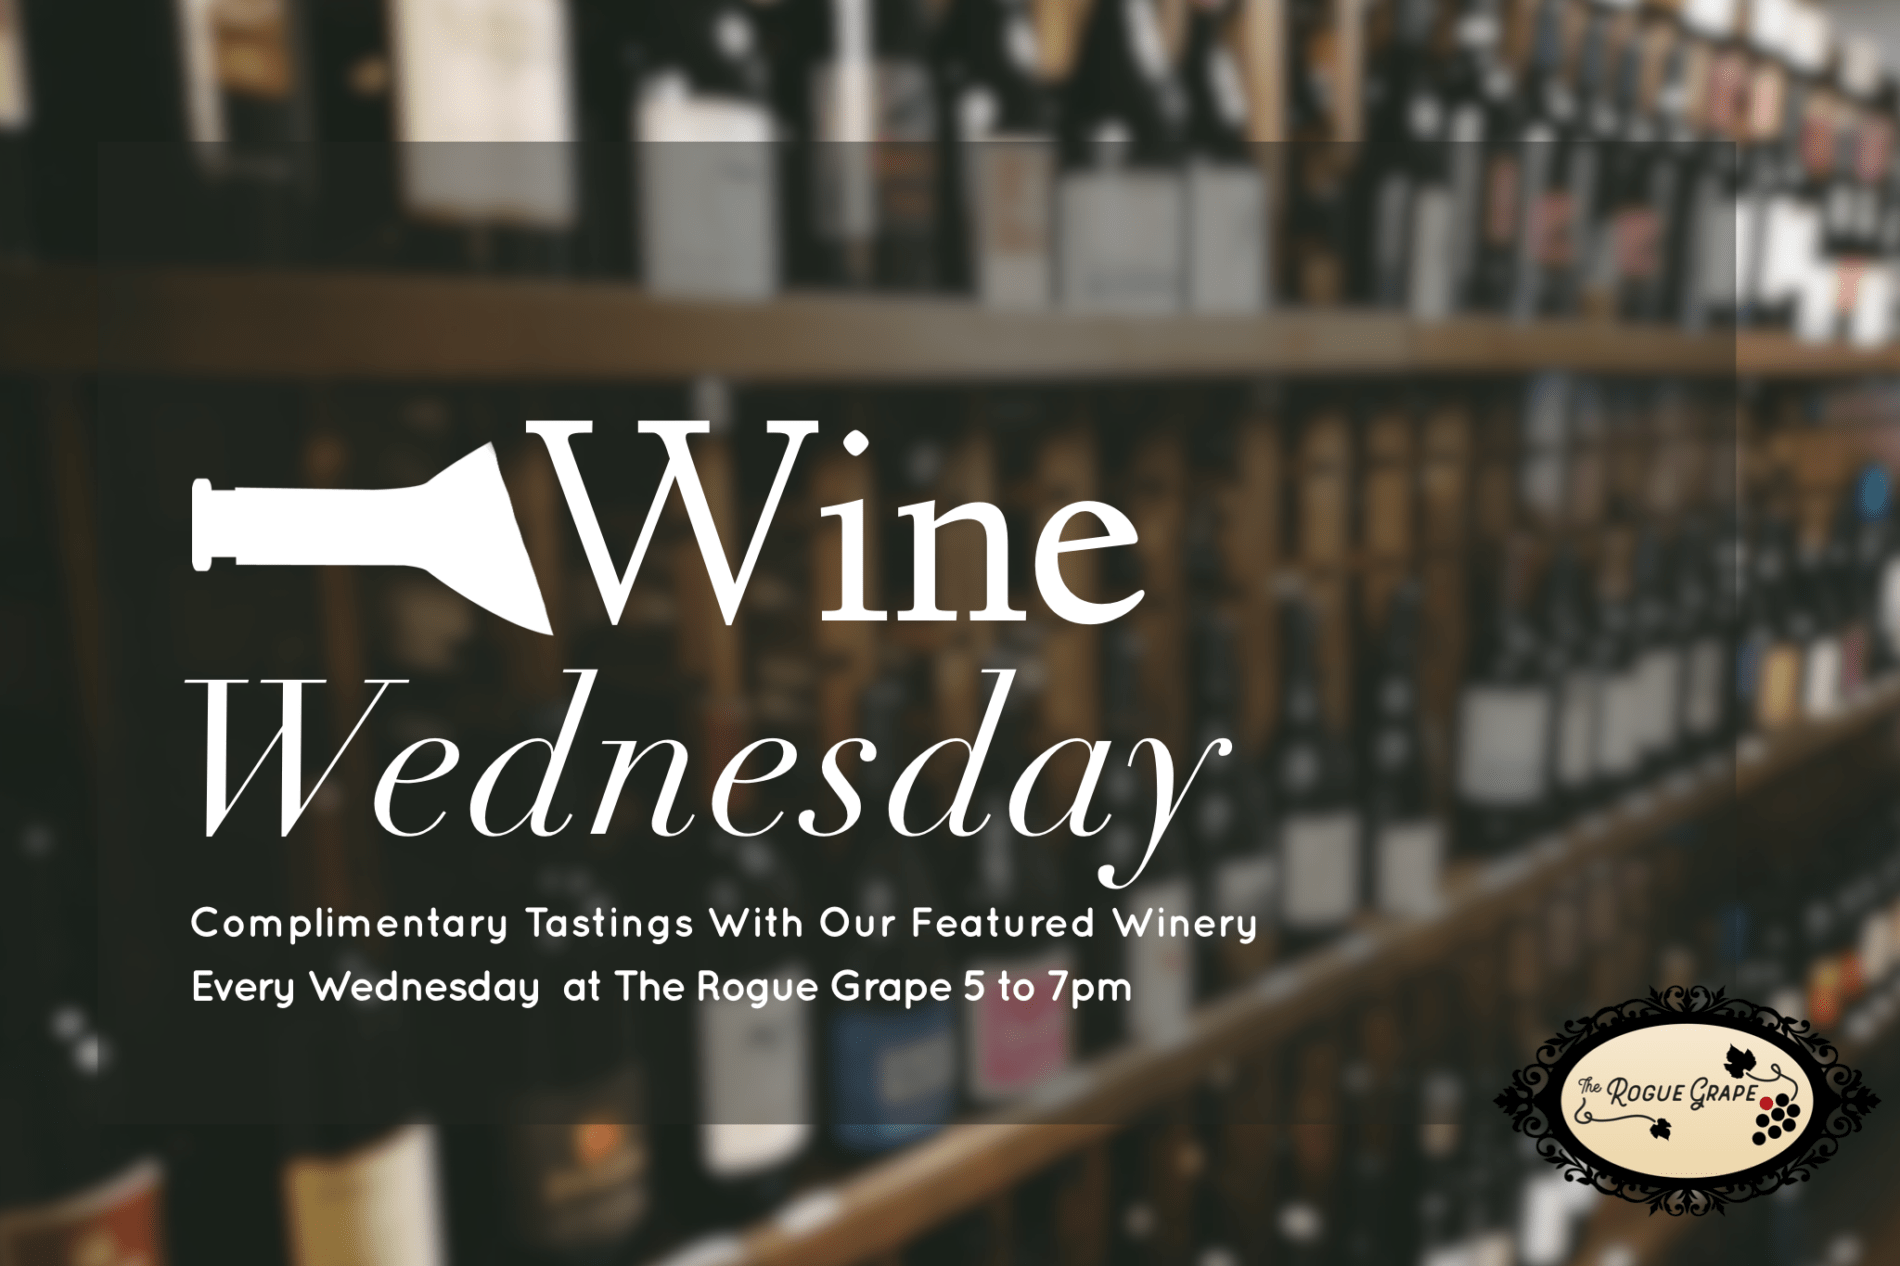 547F0761 A255 404E 8B50 DD0F95D4EDF0 4 - Wine Wednesday at The Rogue Grape